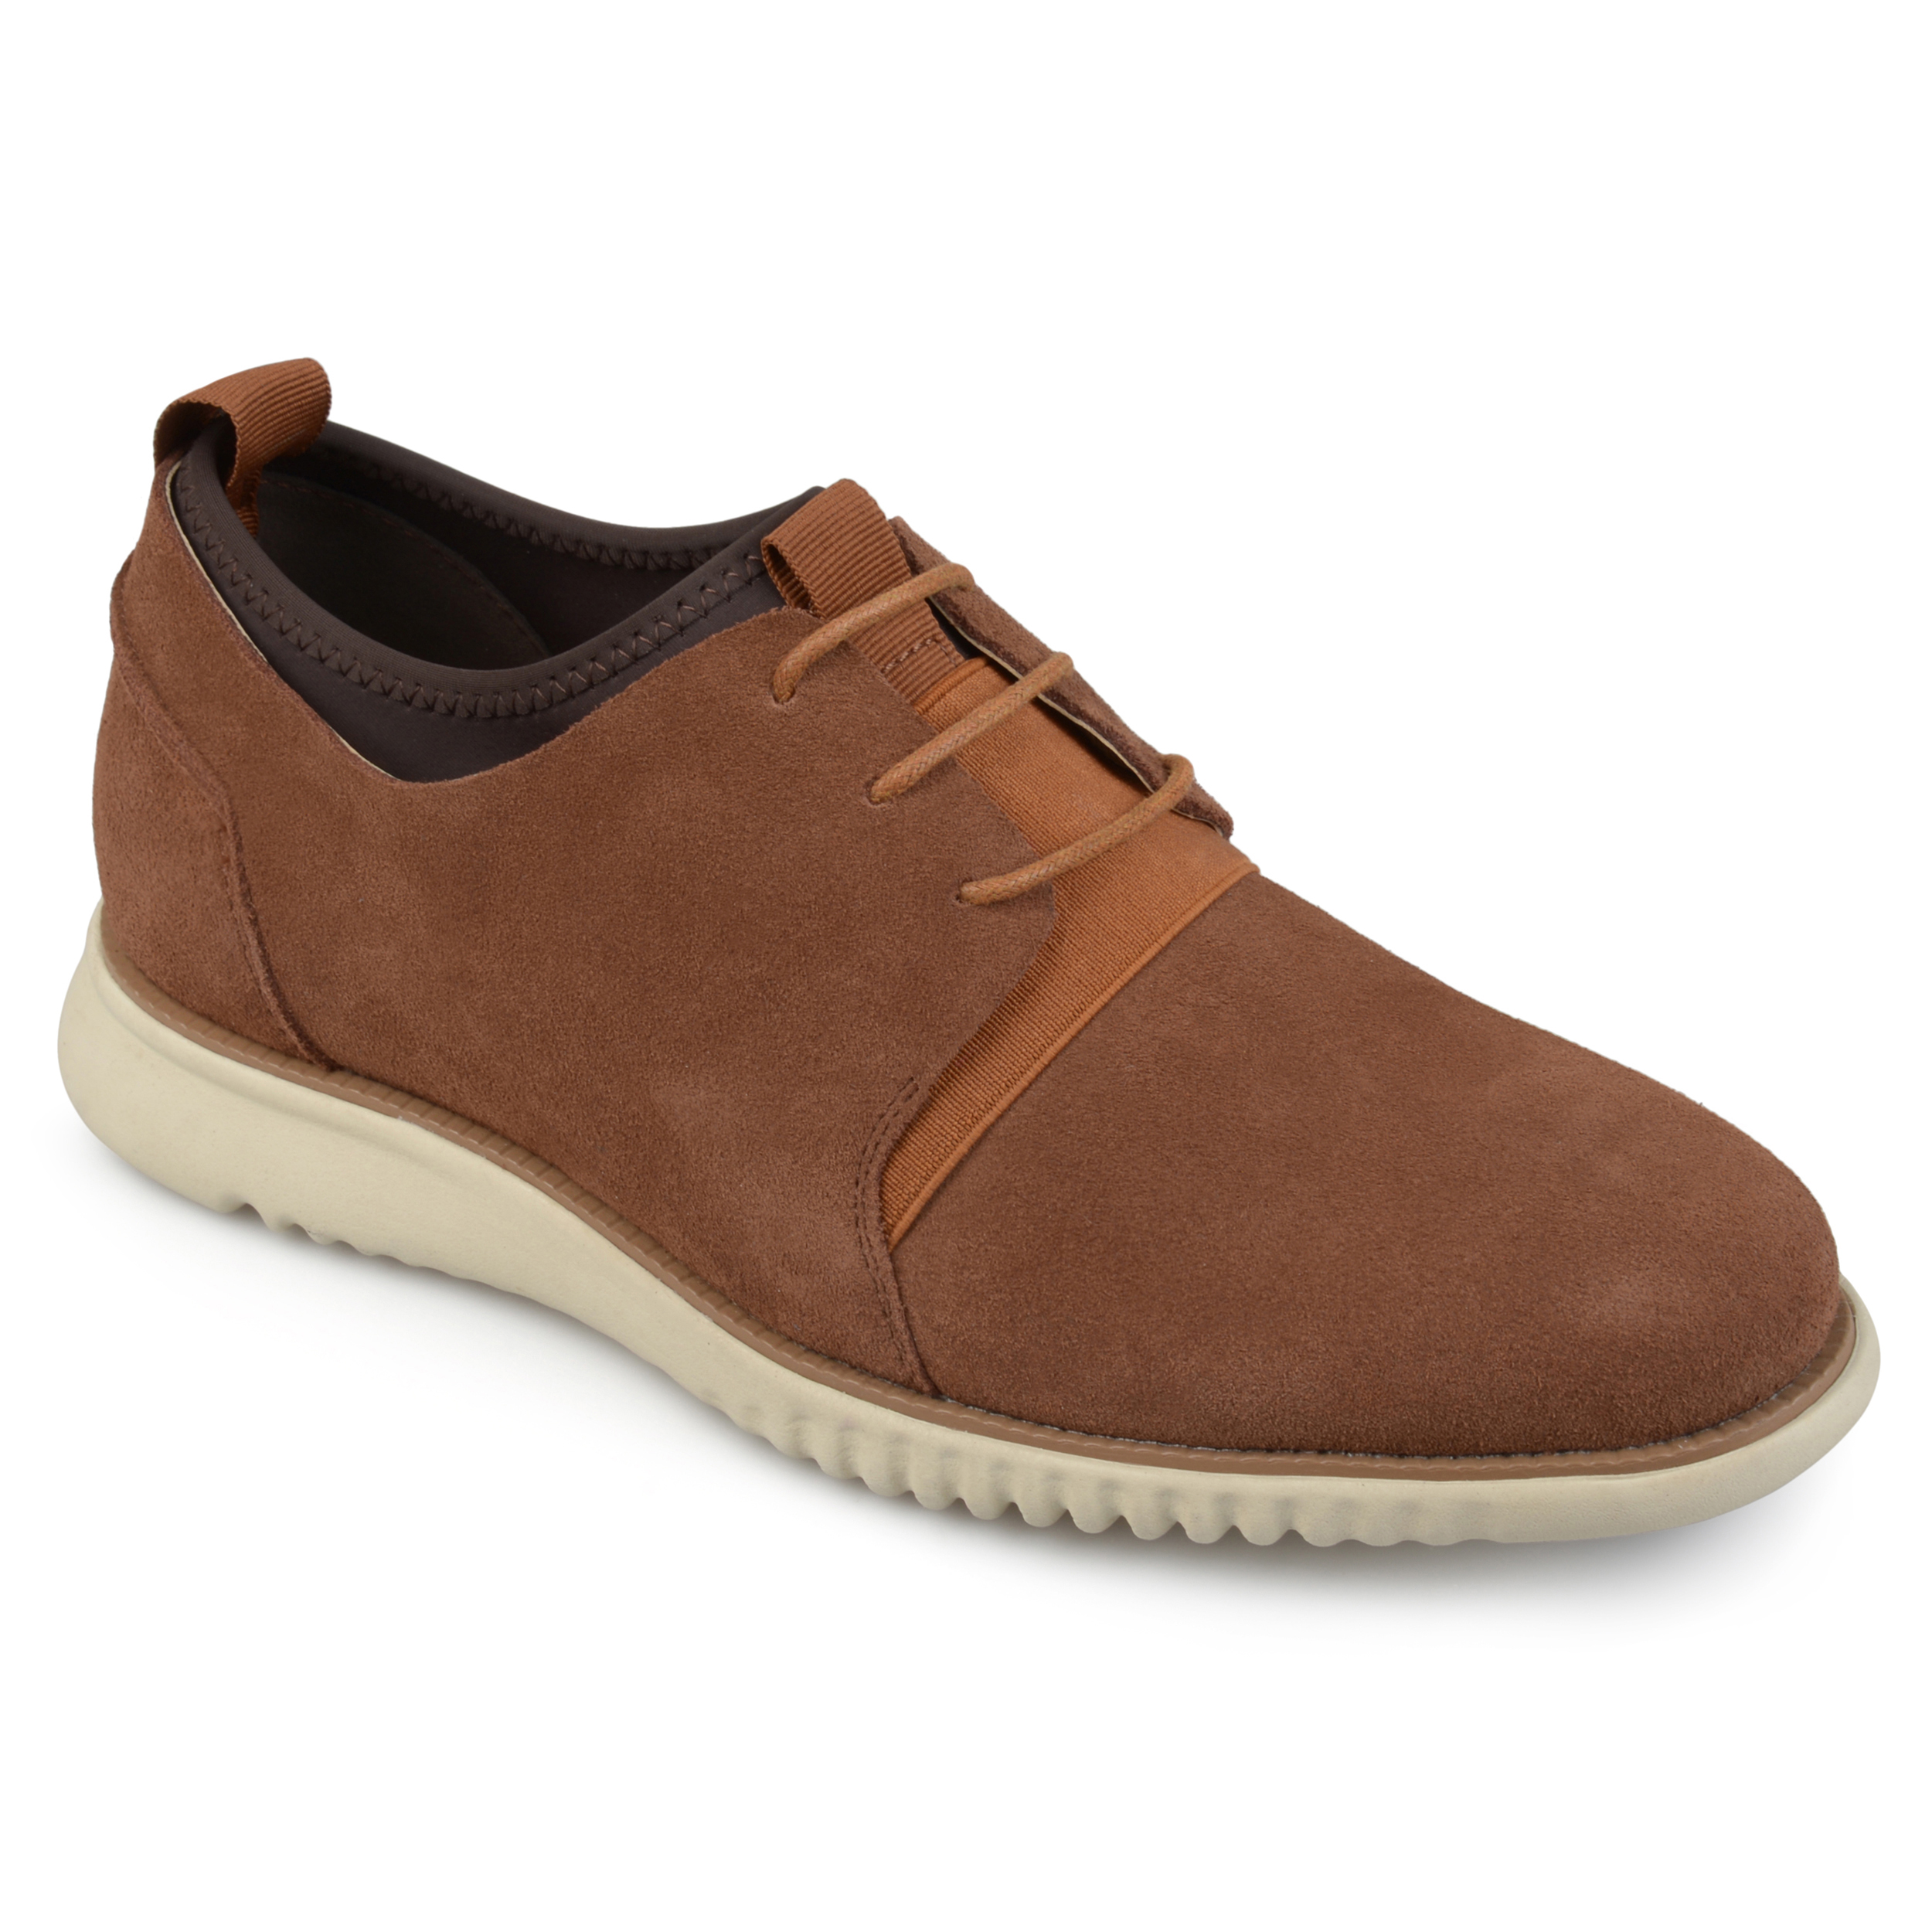 Territory Men's Casual Lace-up Comfort Sole Genuine Suede Shoes